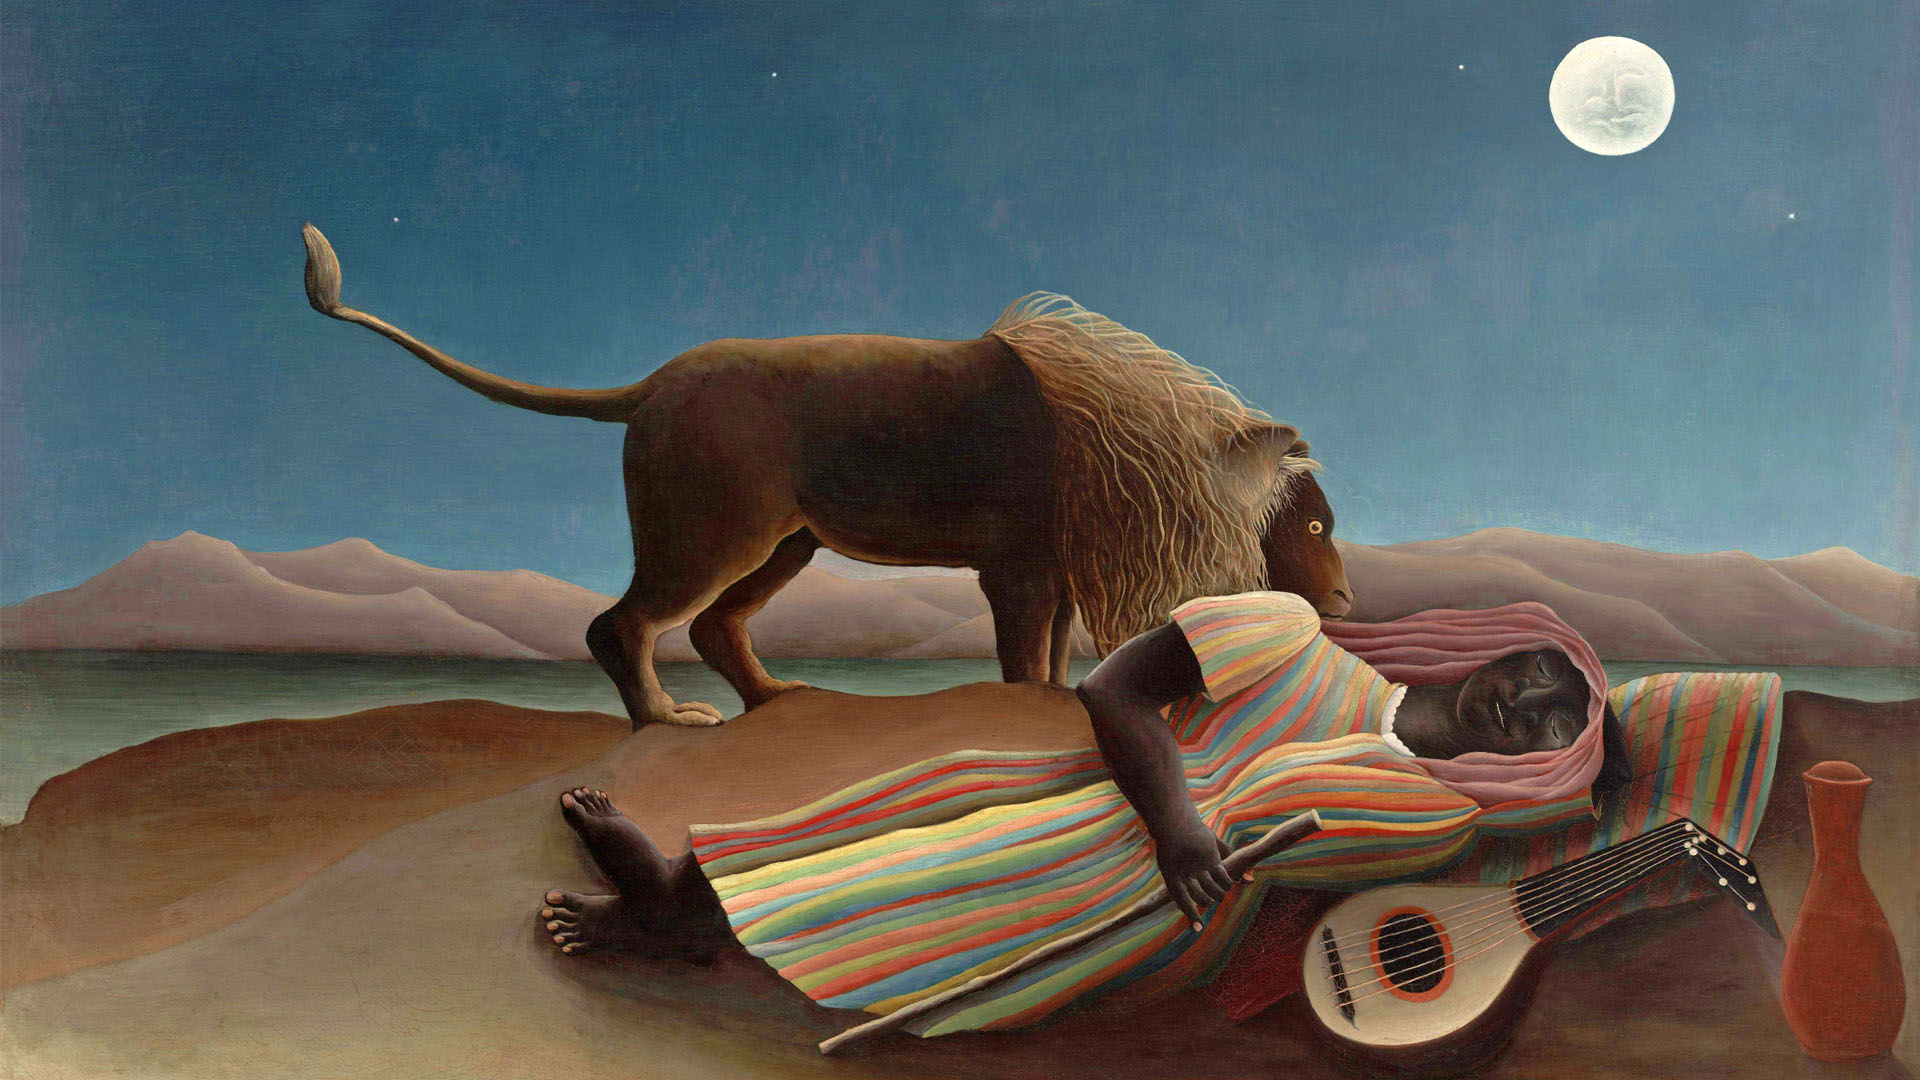 Henri Rousseau - The Sleeping Gypsy 1920x1080